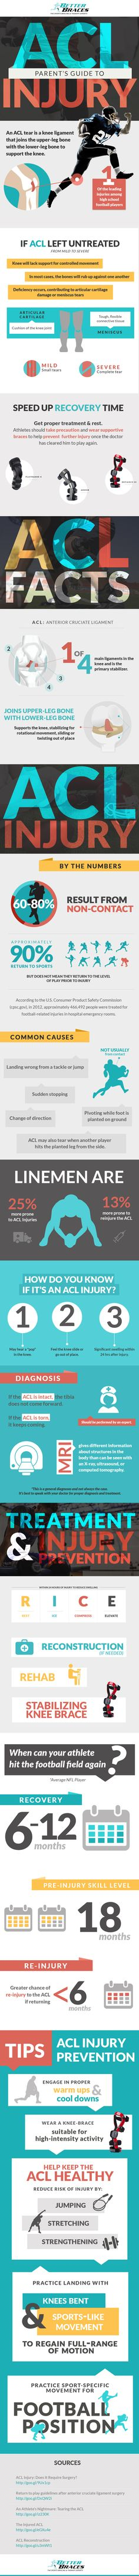 Your step-by-step guide to ACL recovery which is the injury Seth sustained. Acl Tear Recovery, Acl Surgery Recovery, Acl Knee, Knee Injury, Knee Brace, Acl Rehab, Pnf Stretching, Cruciate Ligament, Knee Exercises